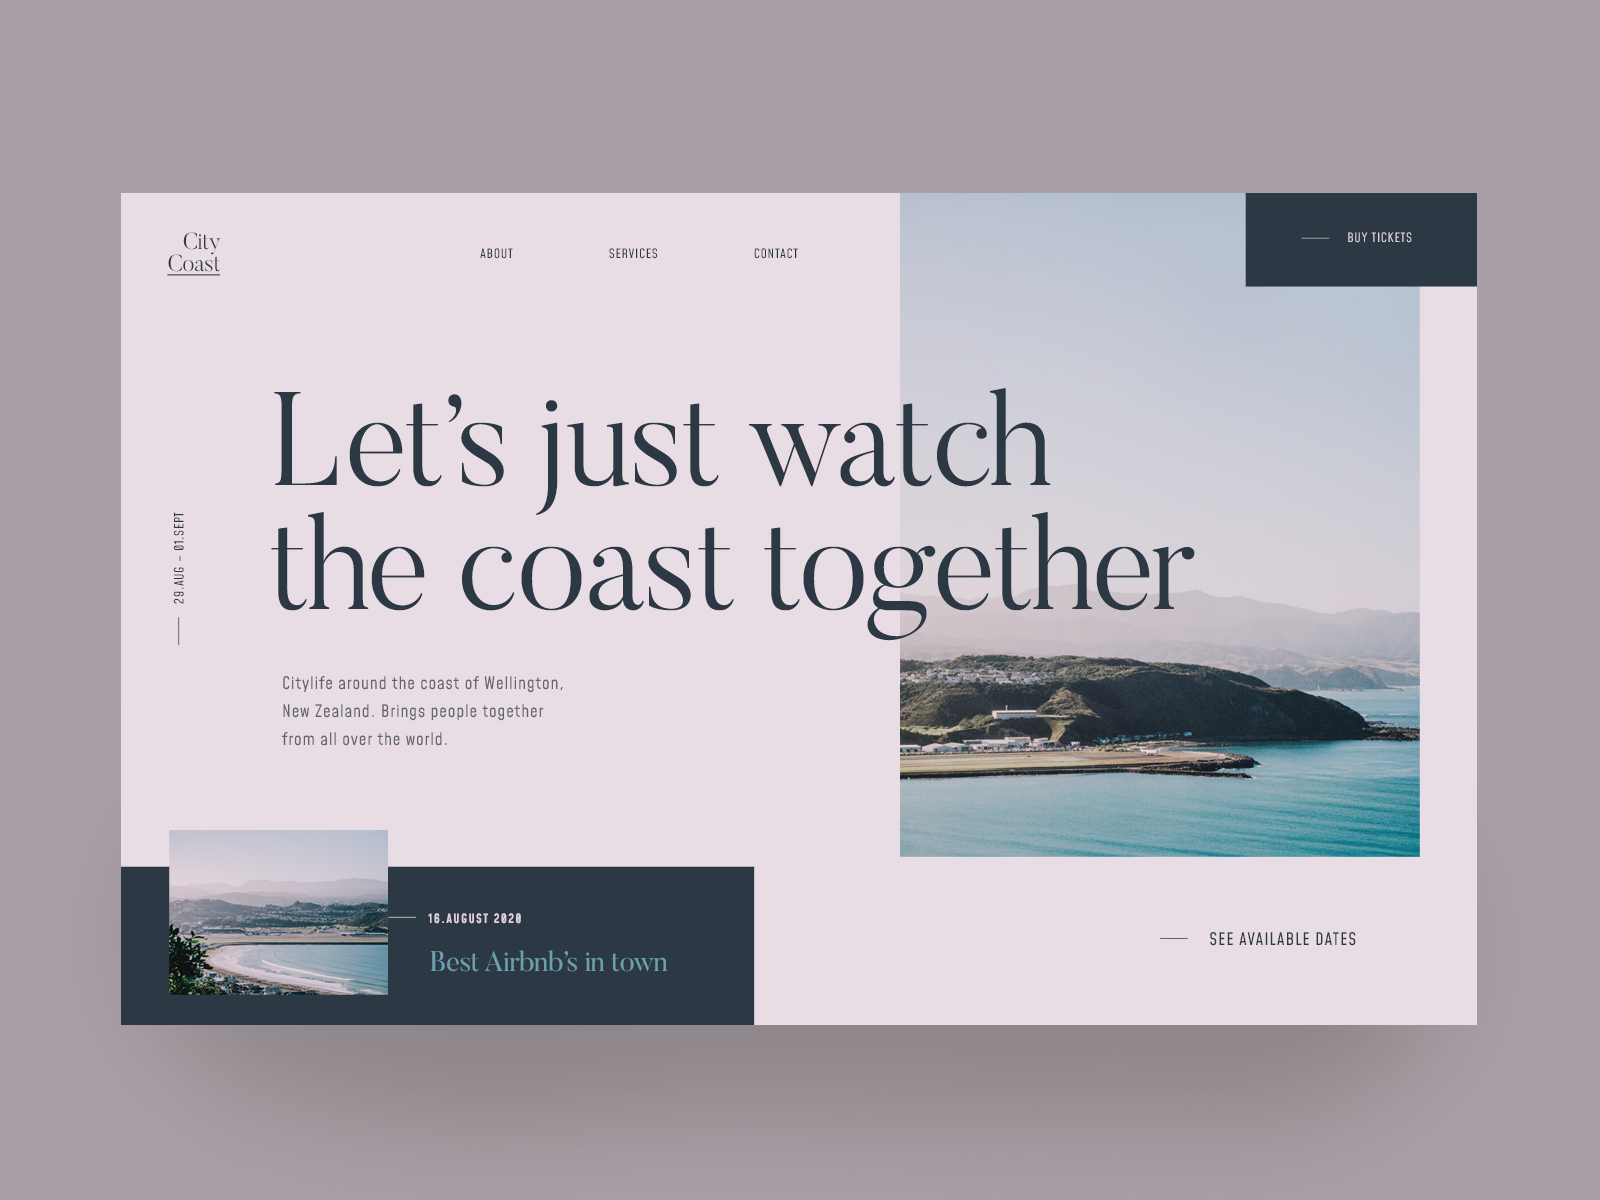 City_Coast_dribbble2